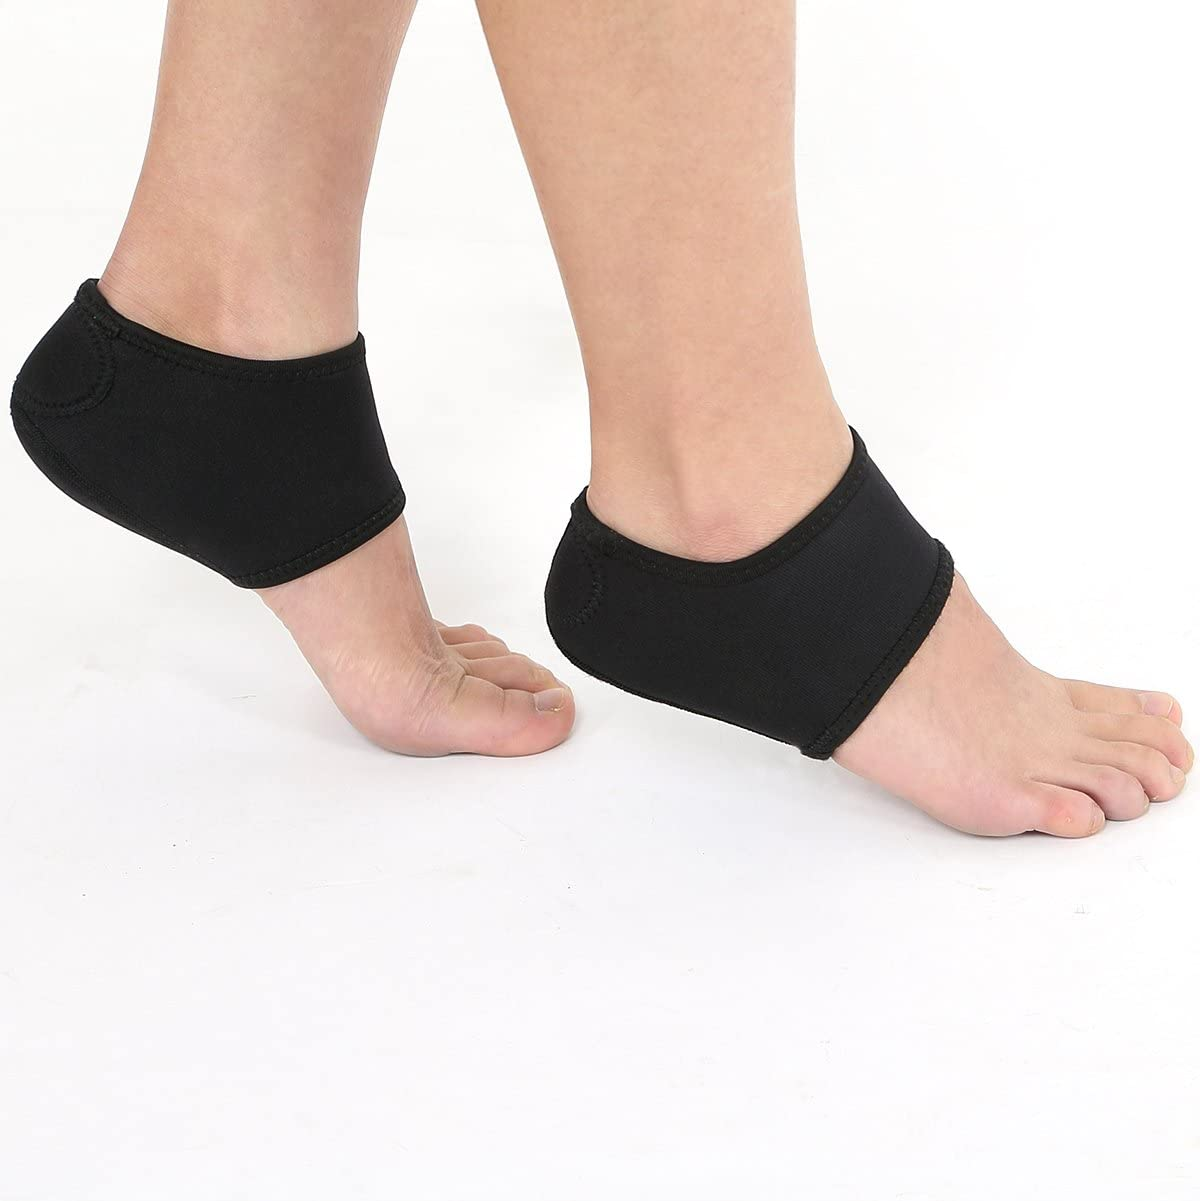 Amazon Com Heel Support Plantar Fasciitis Foot Support Heel Pain Arch Support 1 Pair Sports Outdoors